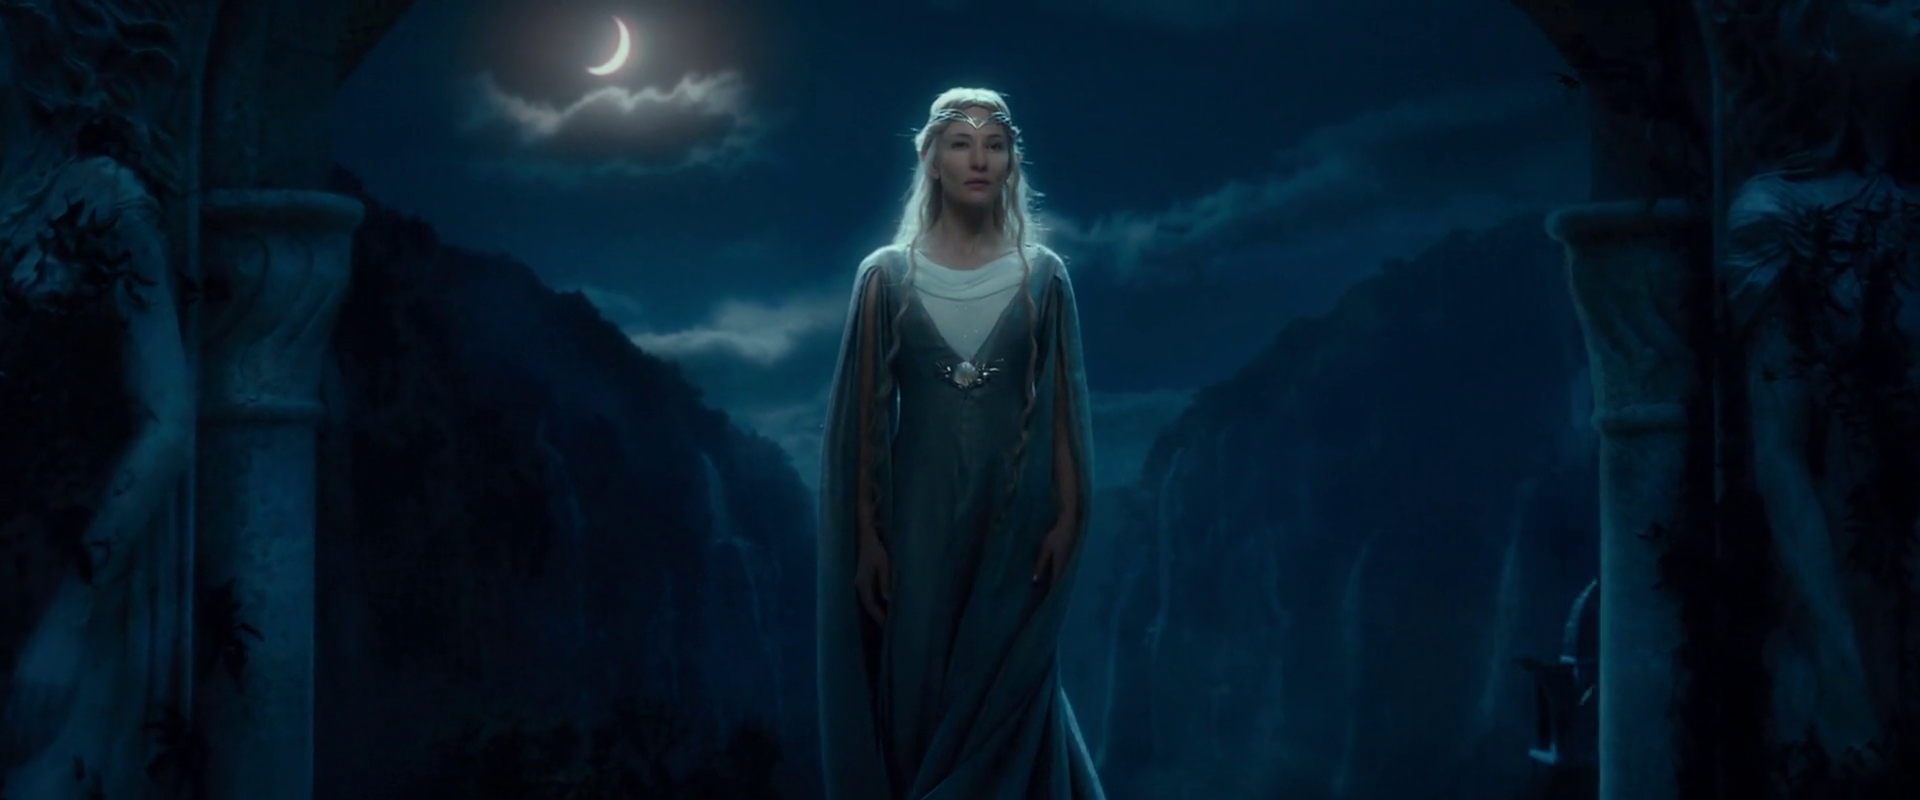 Galadriel images The Hobbit   Galadriel HD wallpaper and background 1920x800